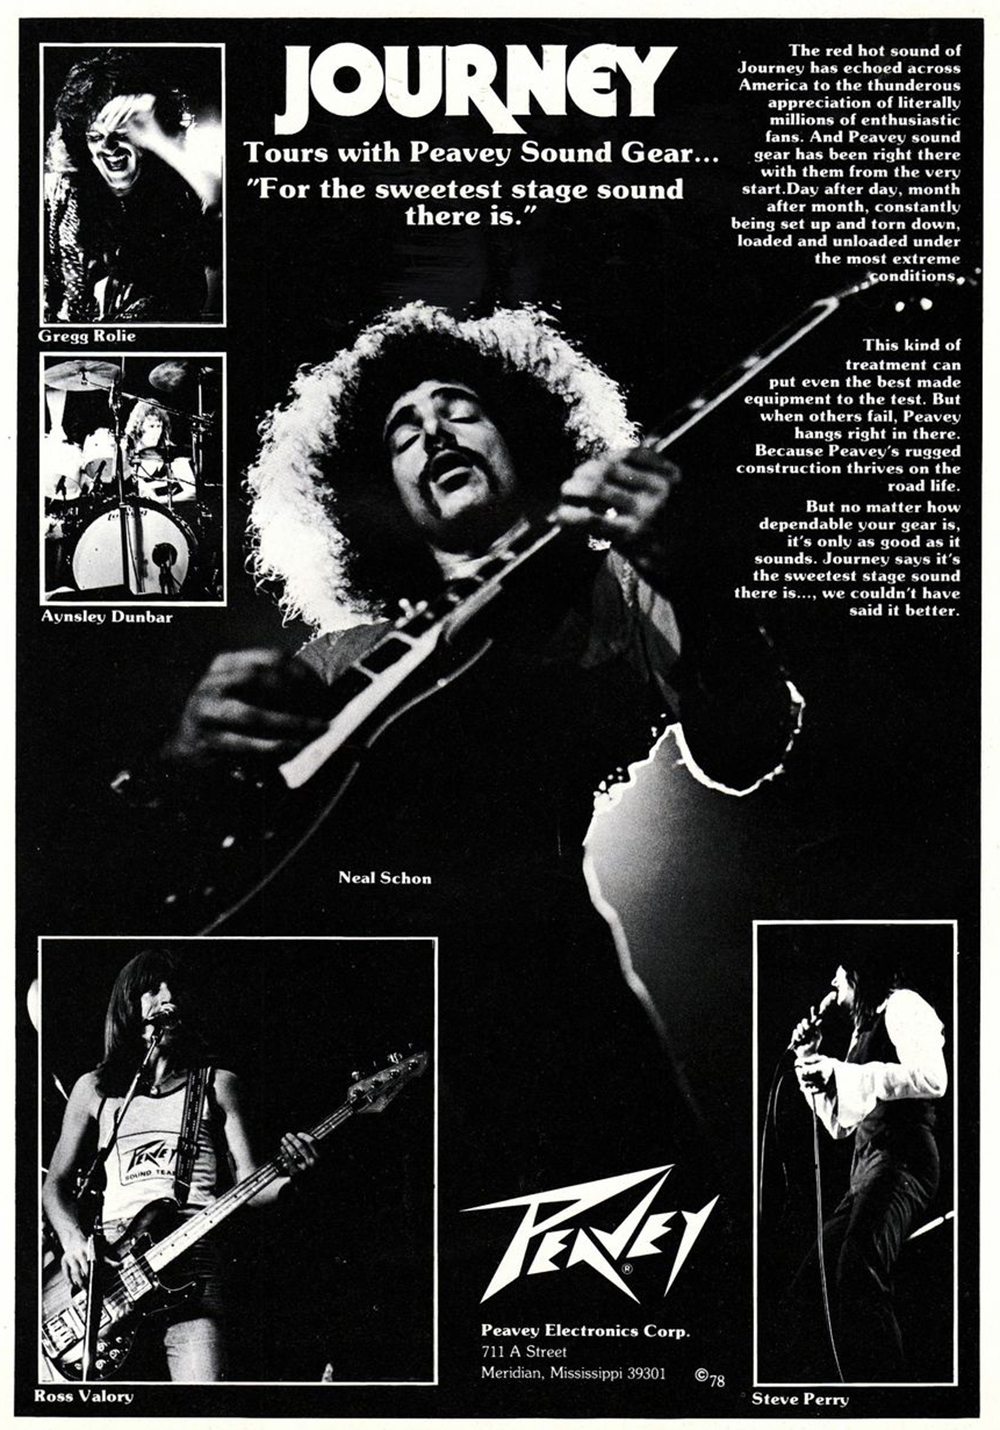 journey band advertisement